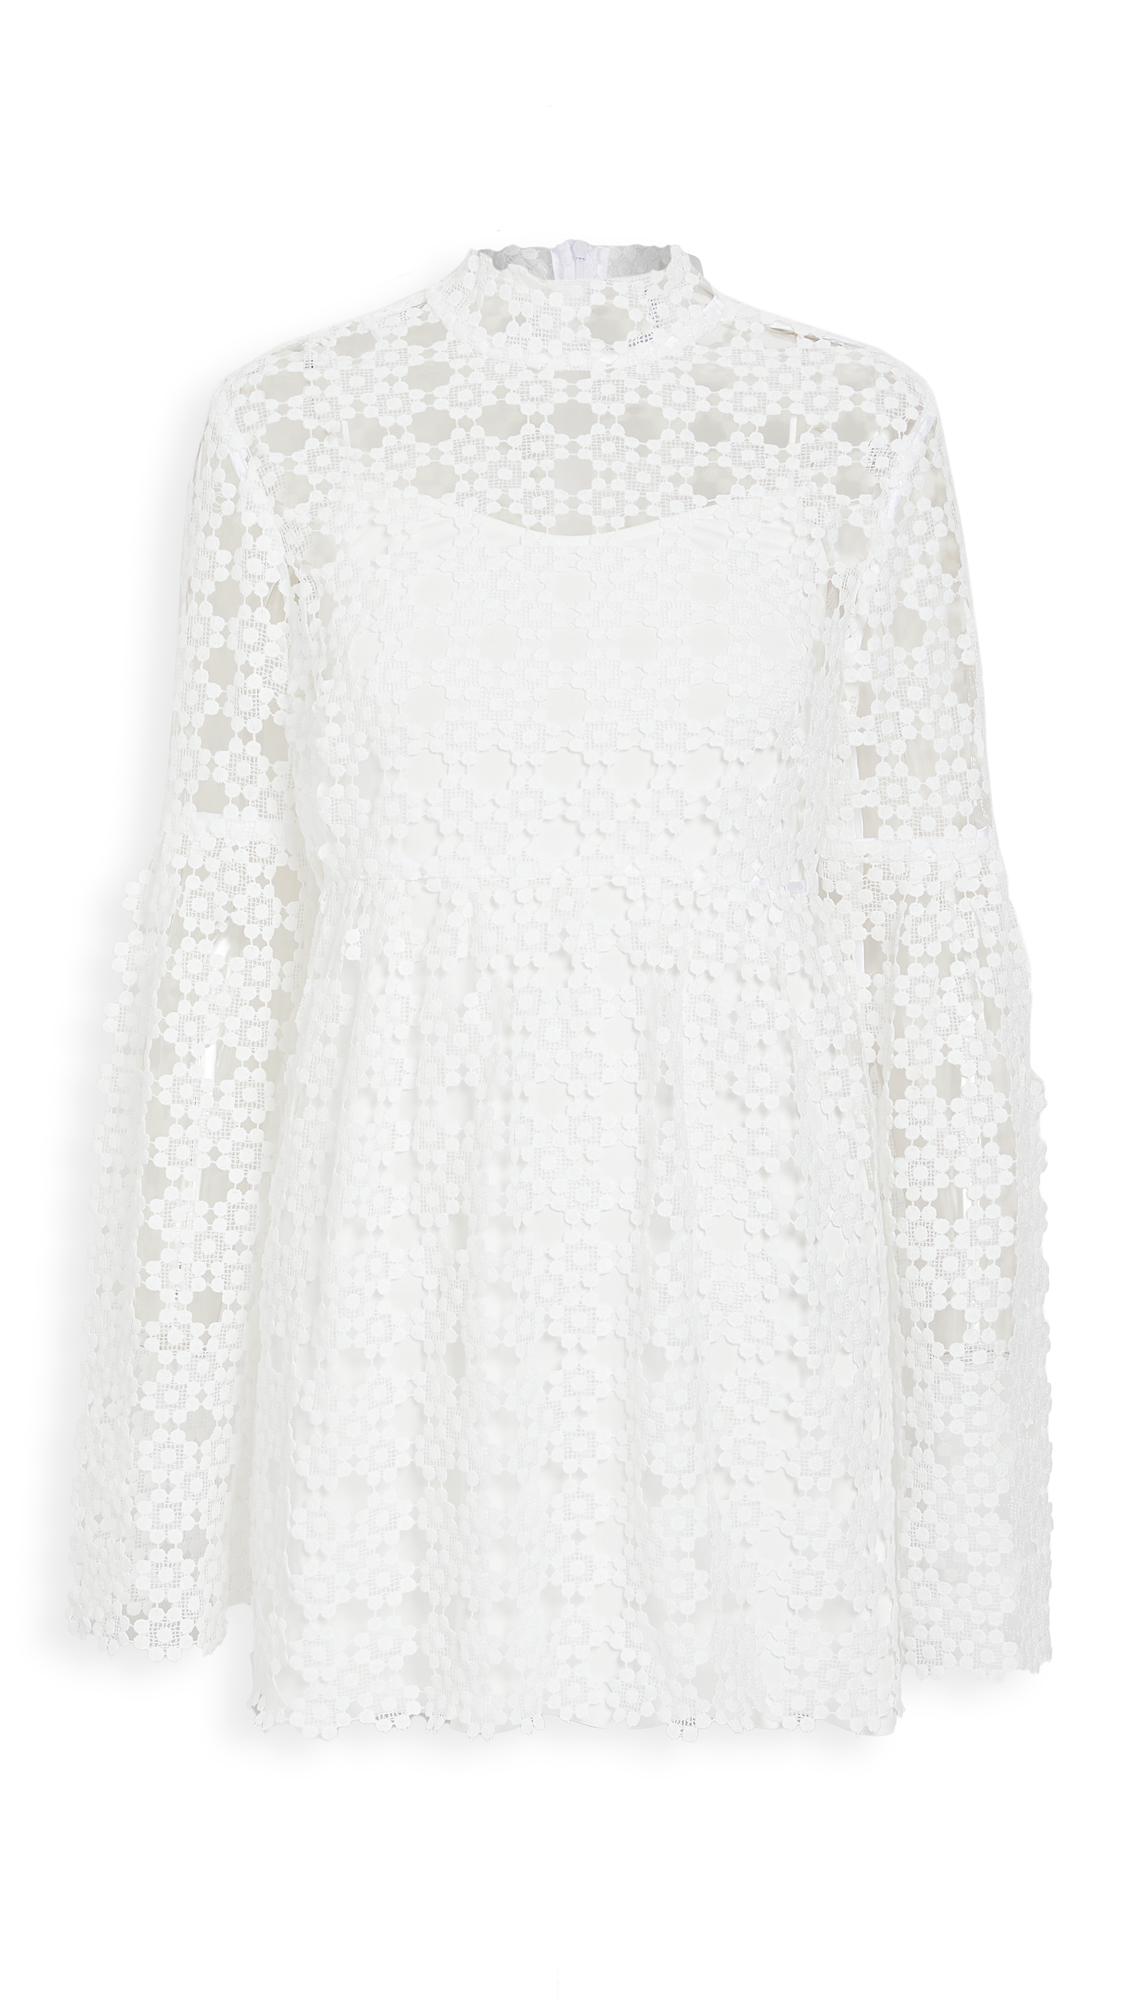 macgraw Carnation Dress - 20% Off Sale